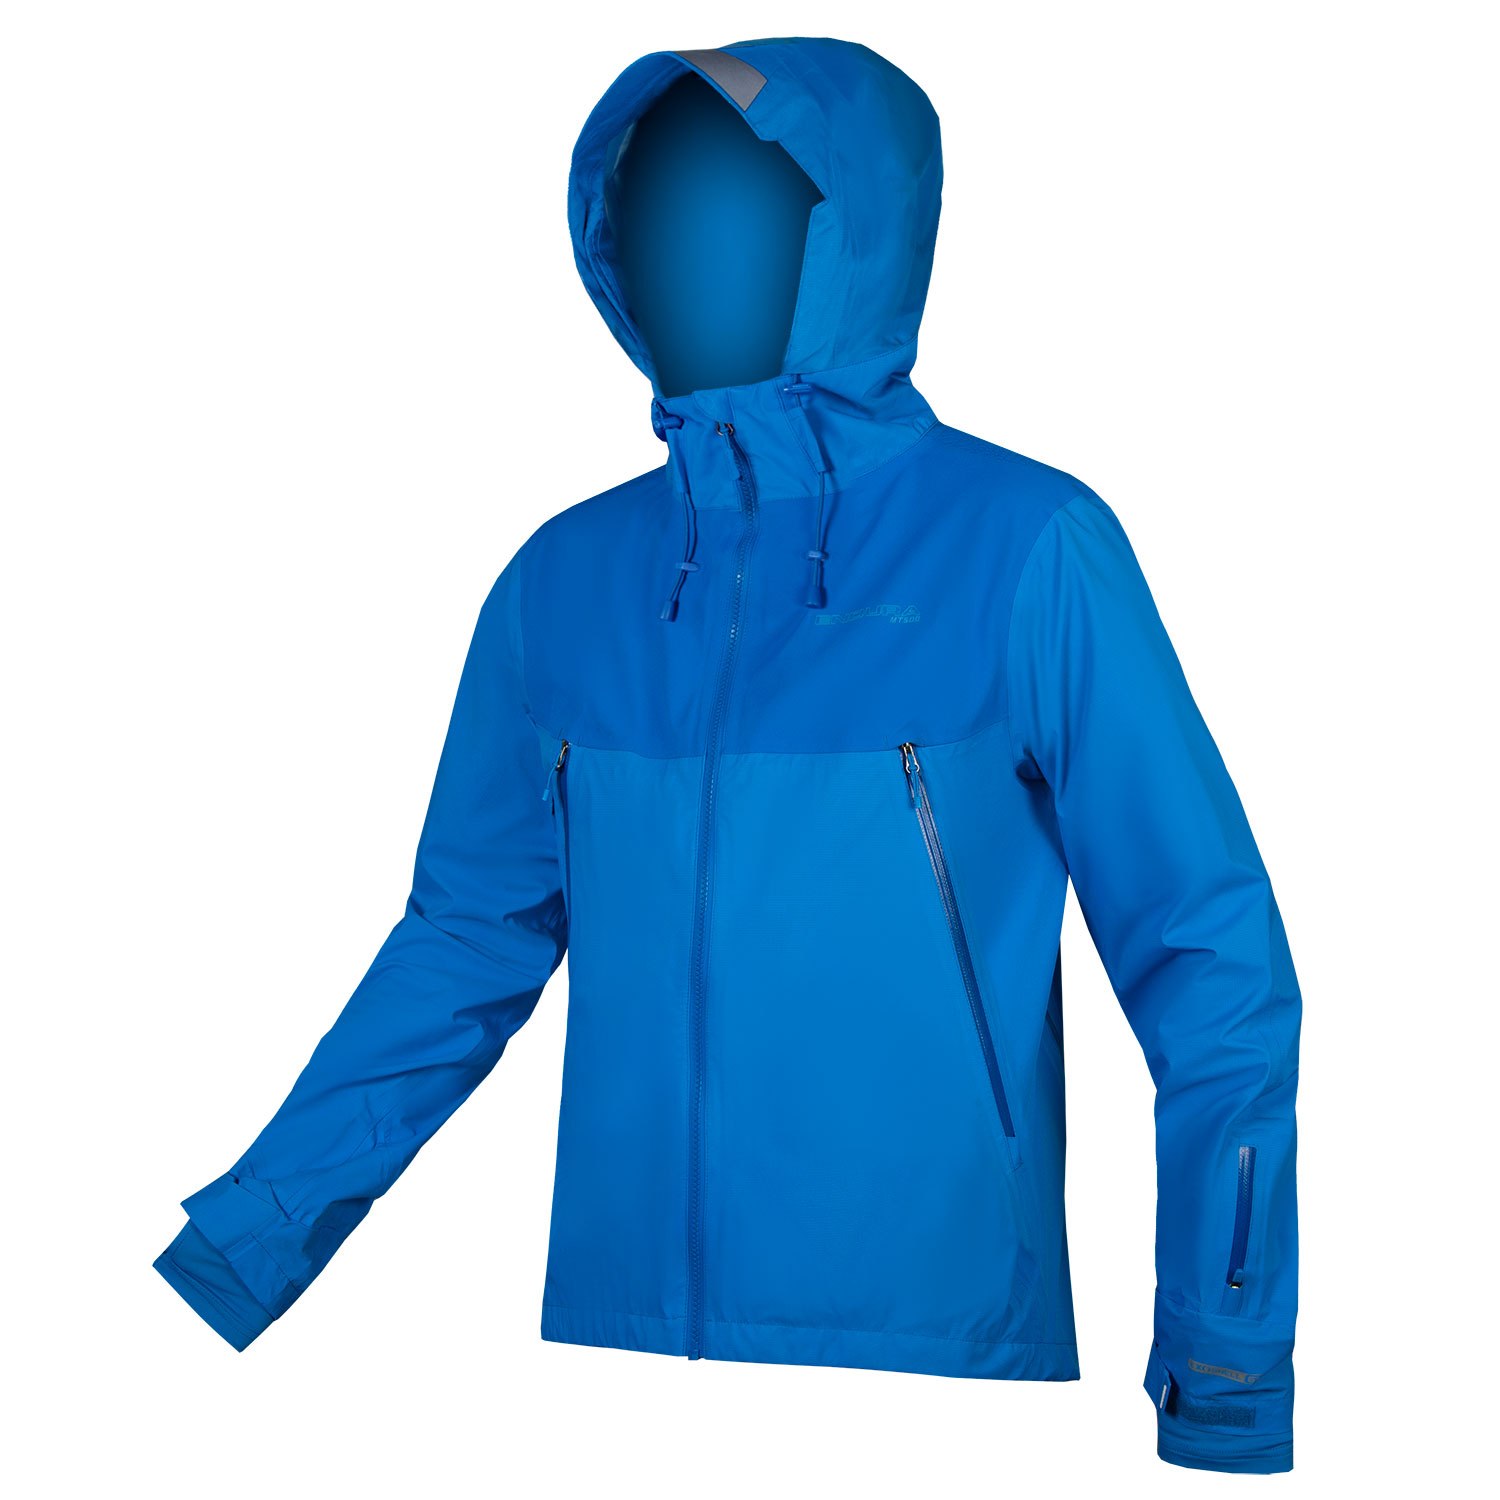 MT500 Waterproof Jacket Azure Blue